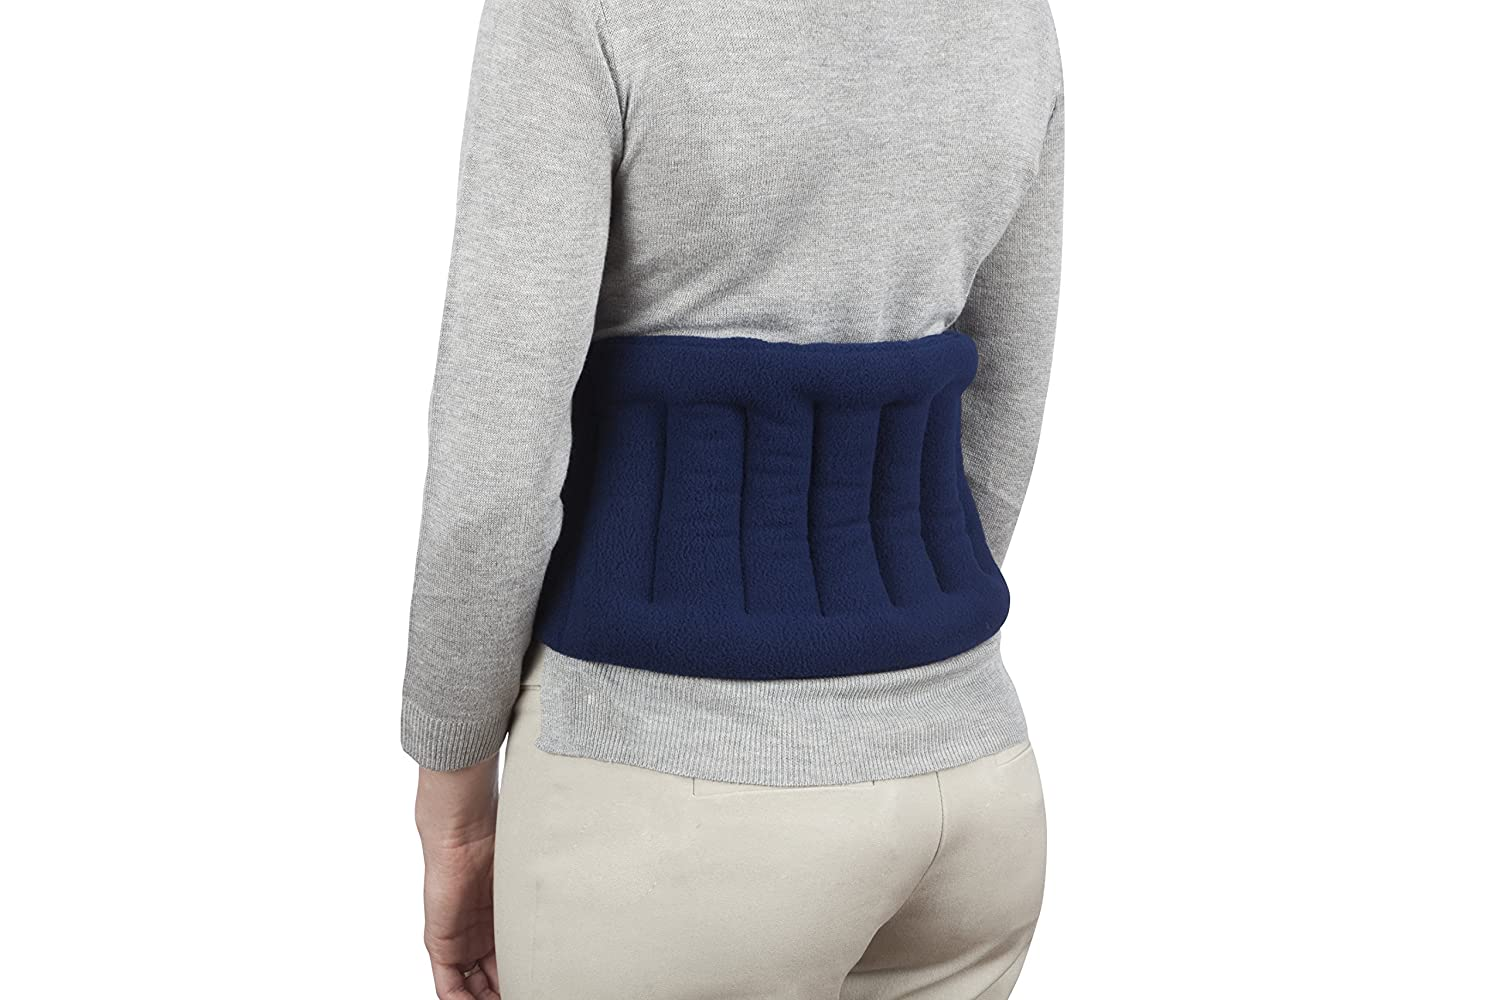 """Sunny Bay Lower Back and Shoulder Joint Heat Wrap with Strap, 10""""x18"""" Heat Pad, Microwave Hot/Cold Pad, Reusable, Portable, Navy Blue"""